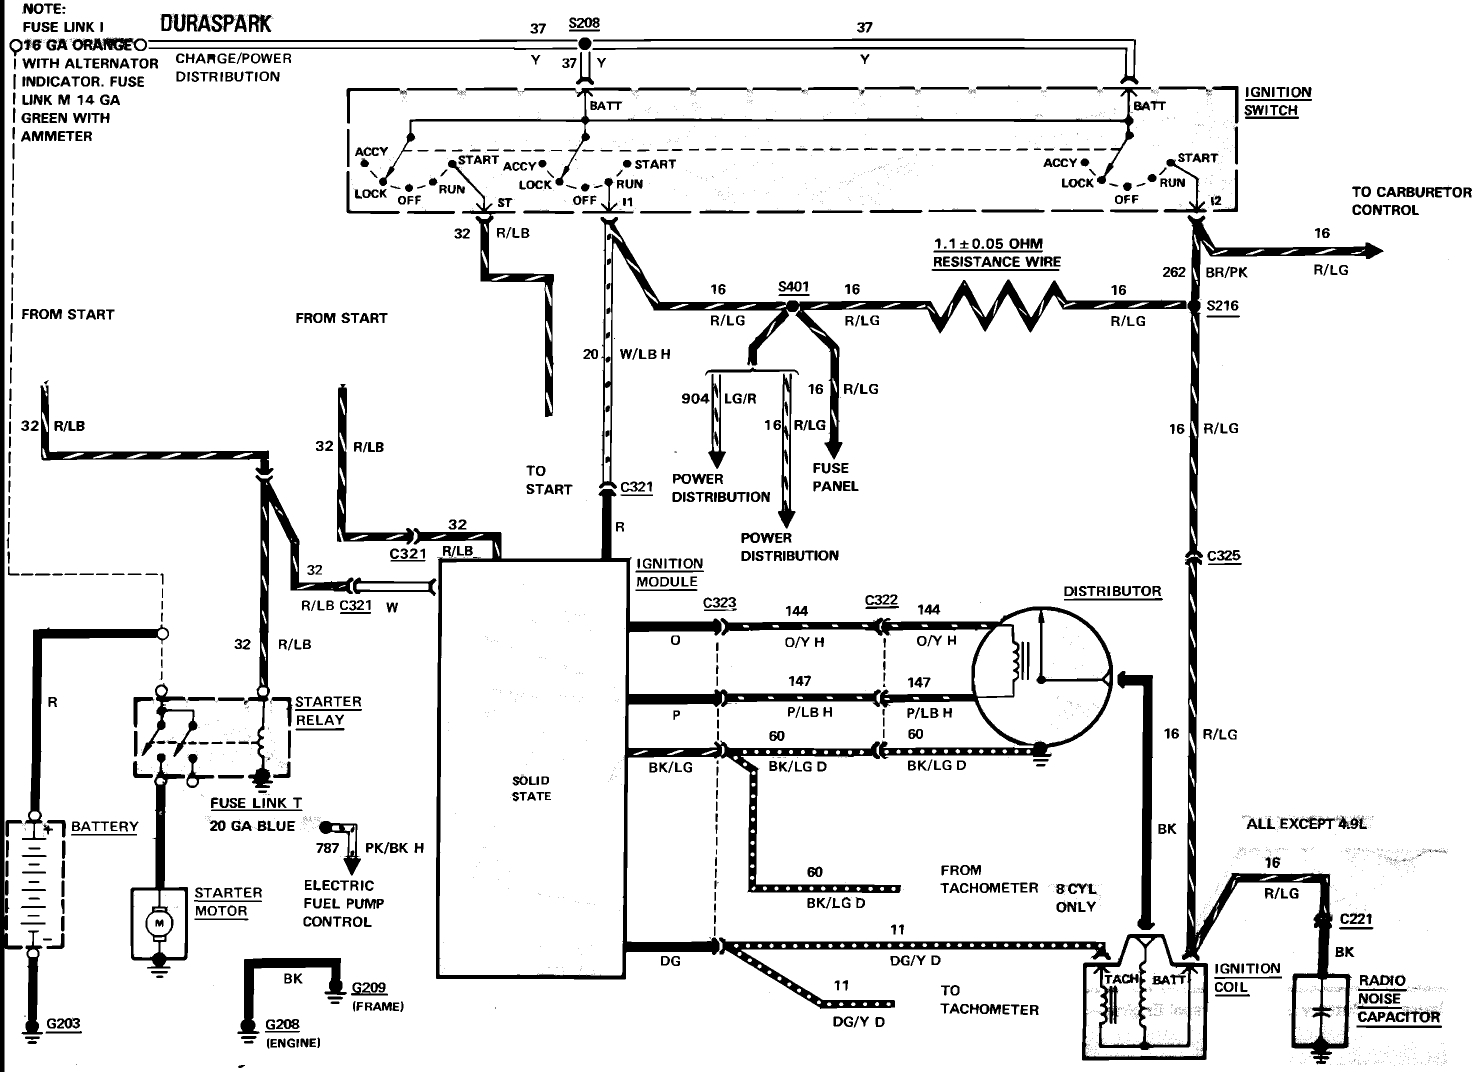 1989 ford f150 ignition wiring diagram | free wiring diagram distributor wiring diagram 1976 duster 1976 f250 distributor wiring diagram